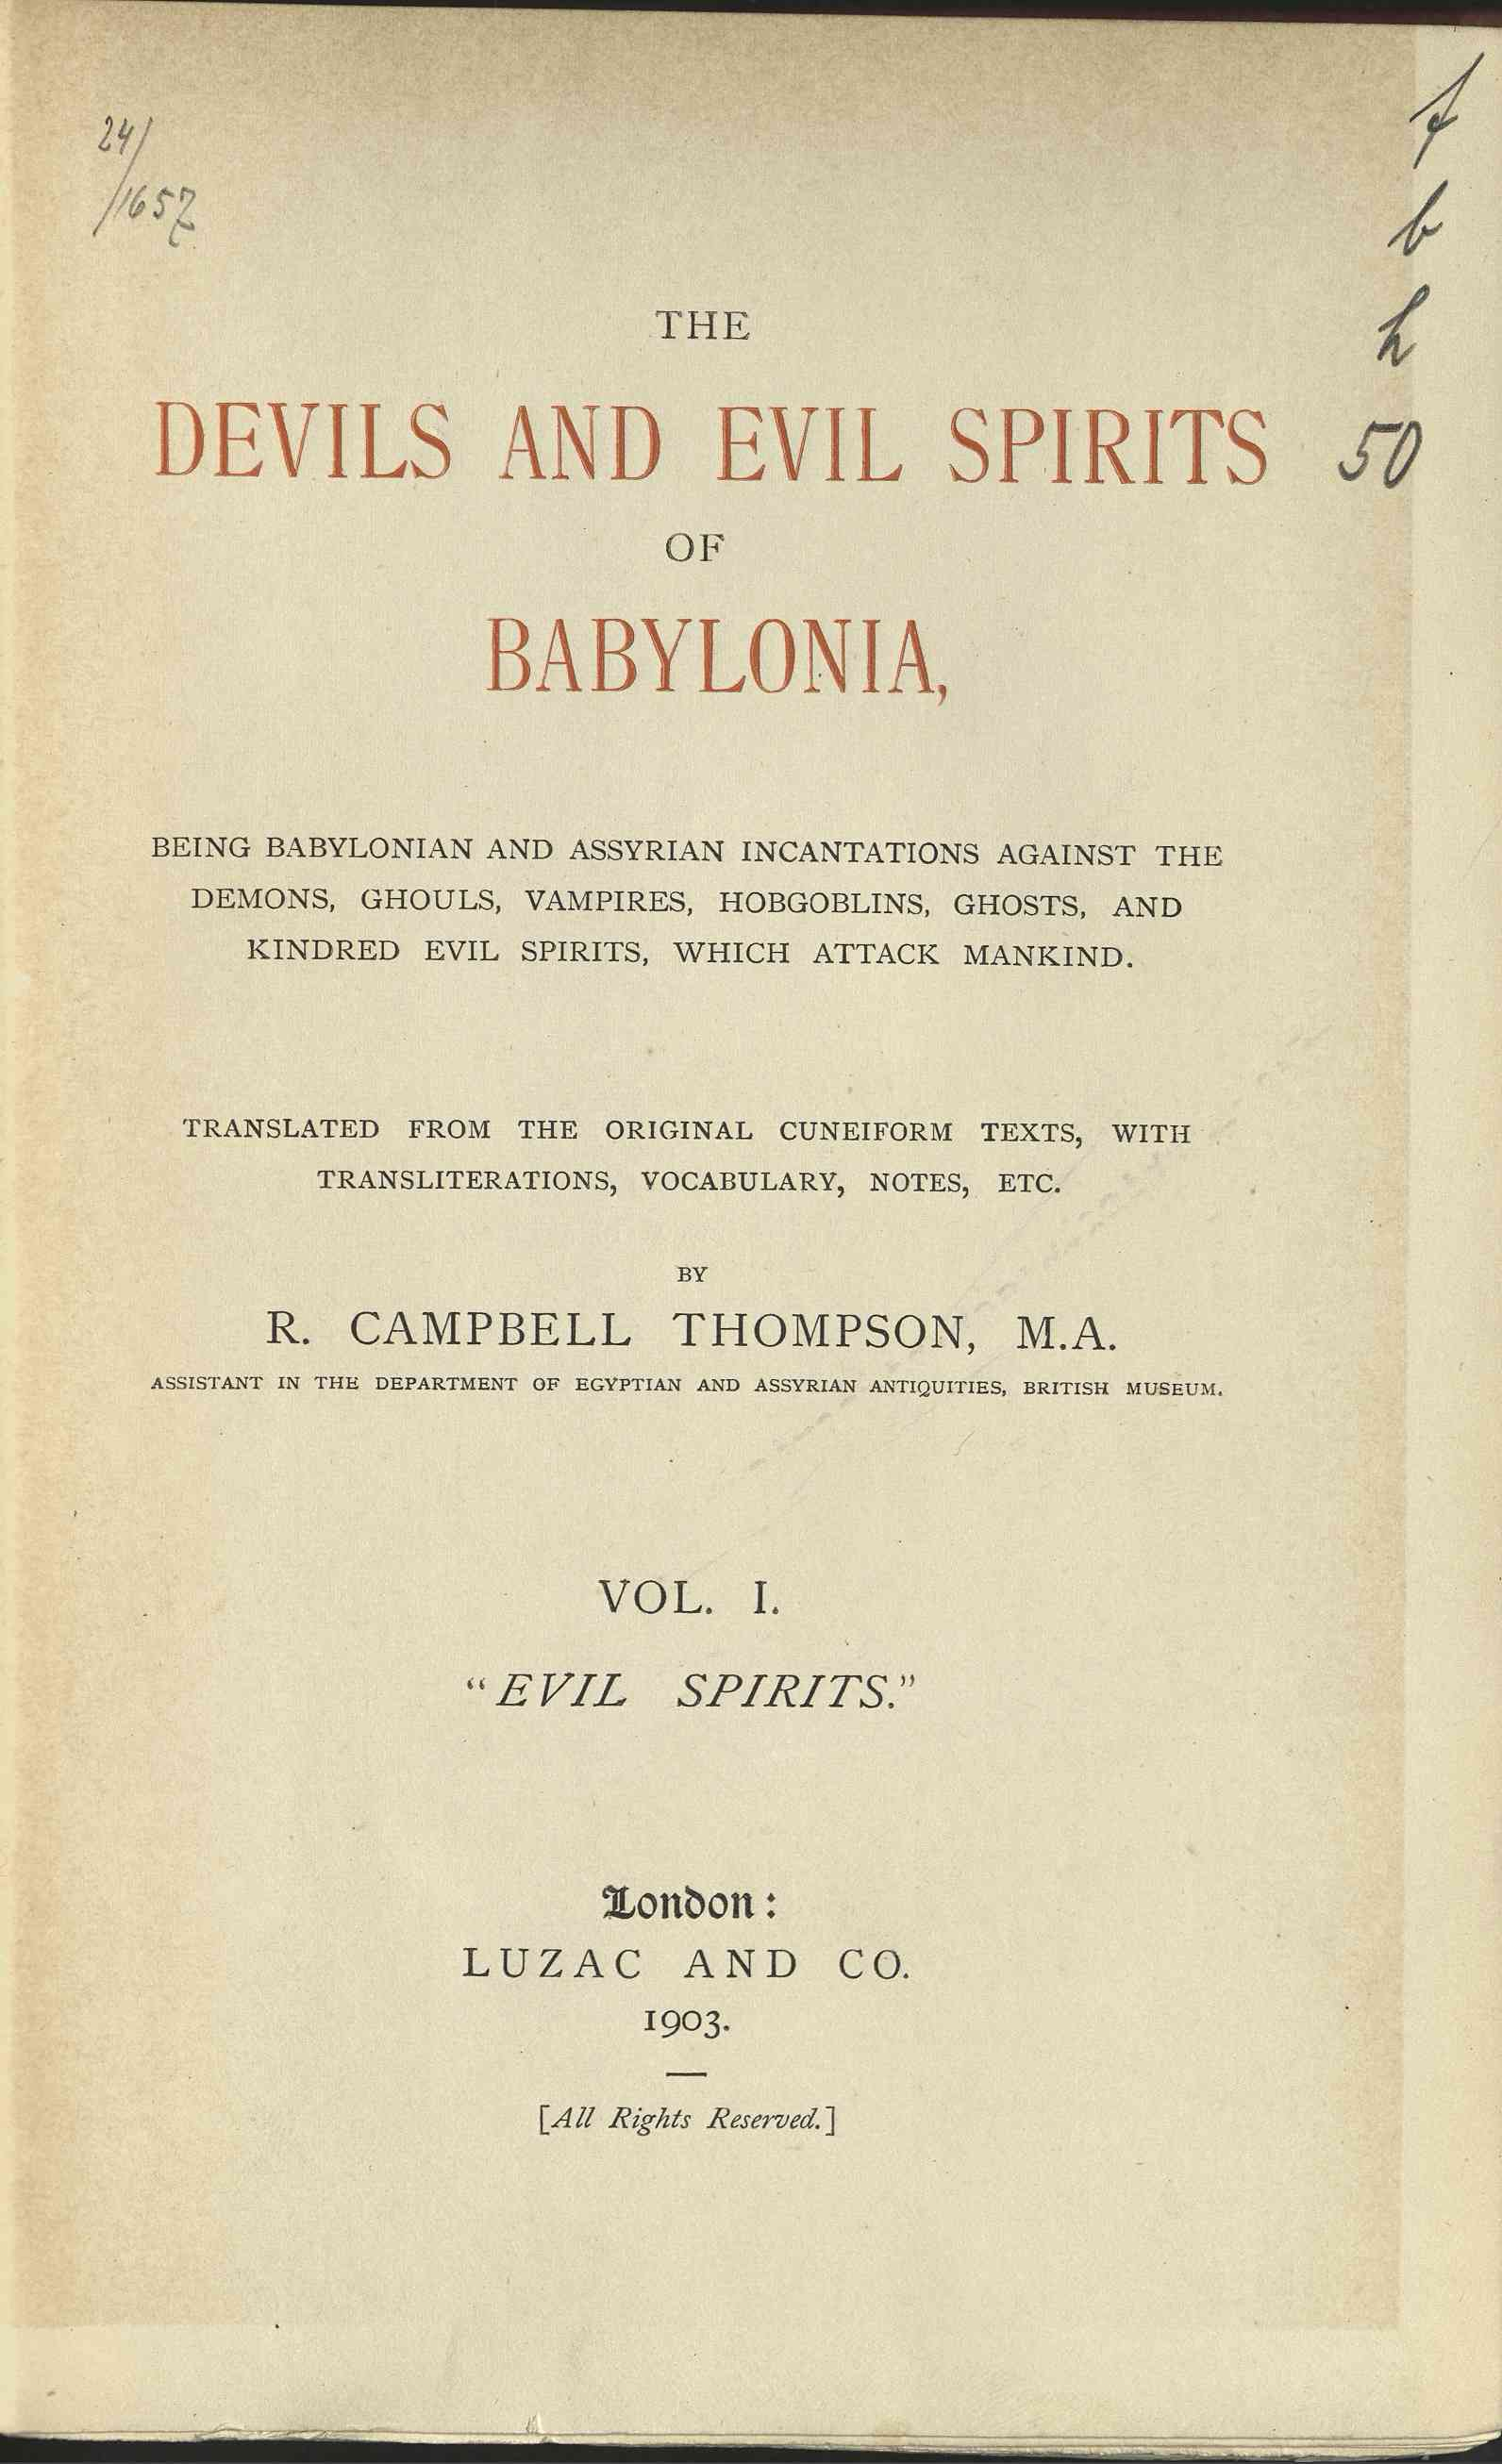 Devils and evil spirits of Babylonia, The